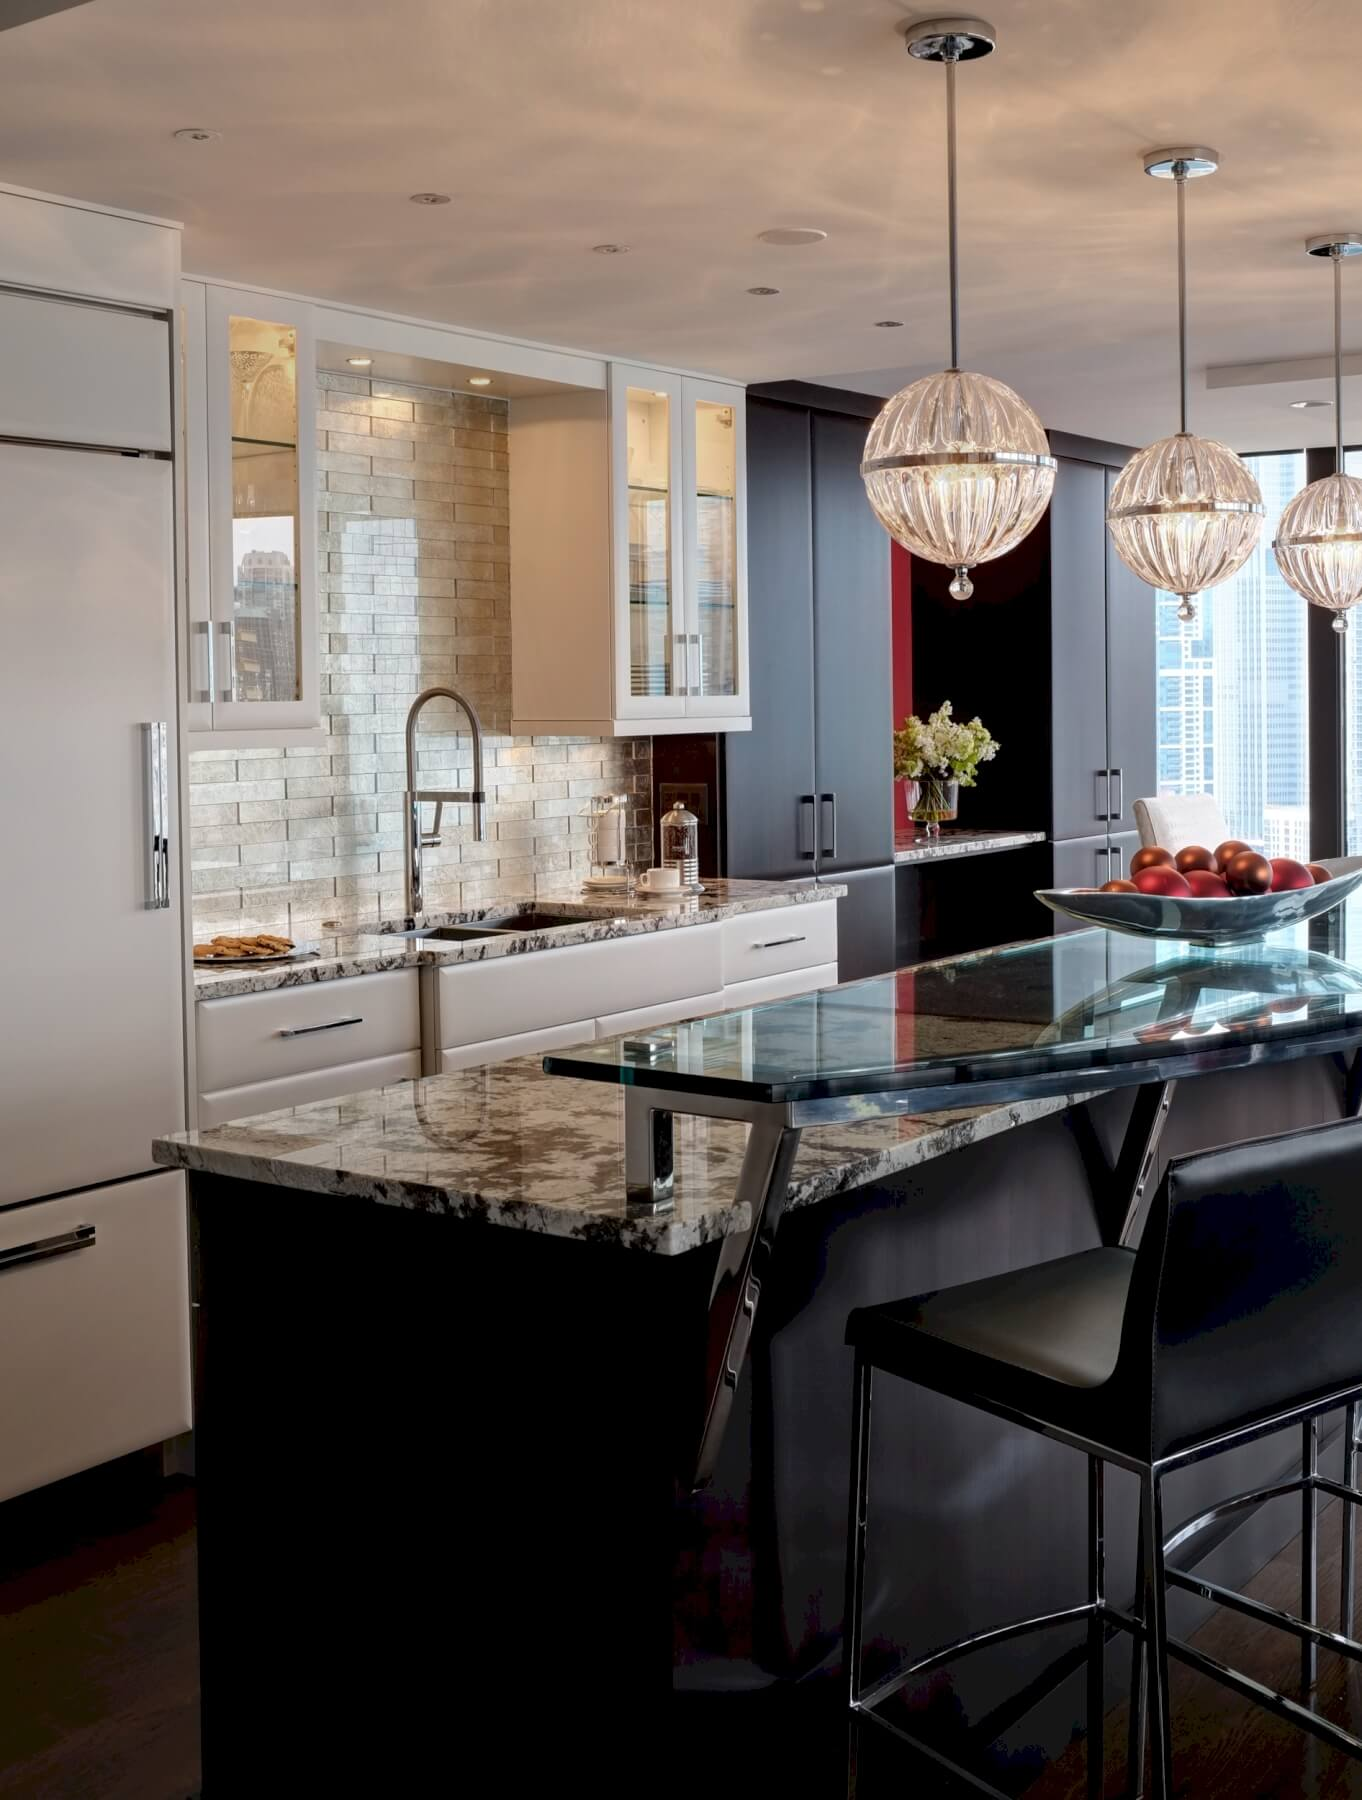 Intricate details abound here, including granite topped island with raised glass dinning bar, beige brick backsplash, and spherical chandeliers. Black and white cabinetry add visual contrast.